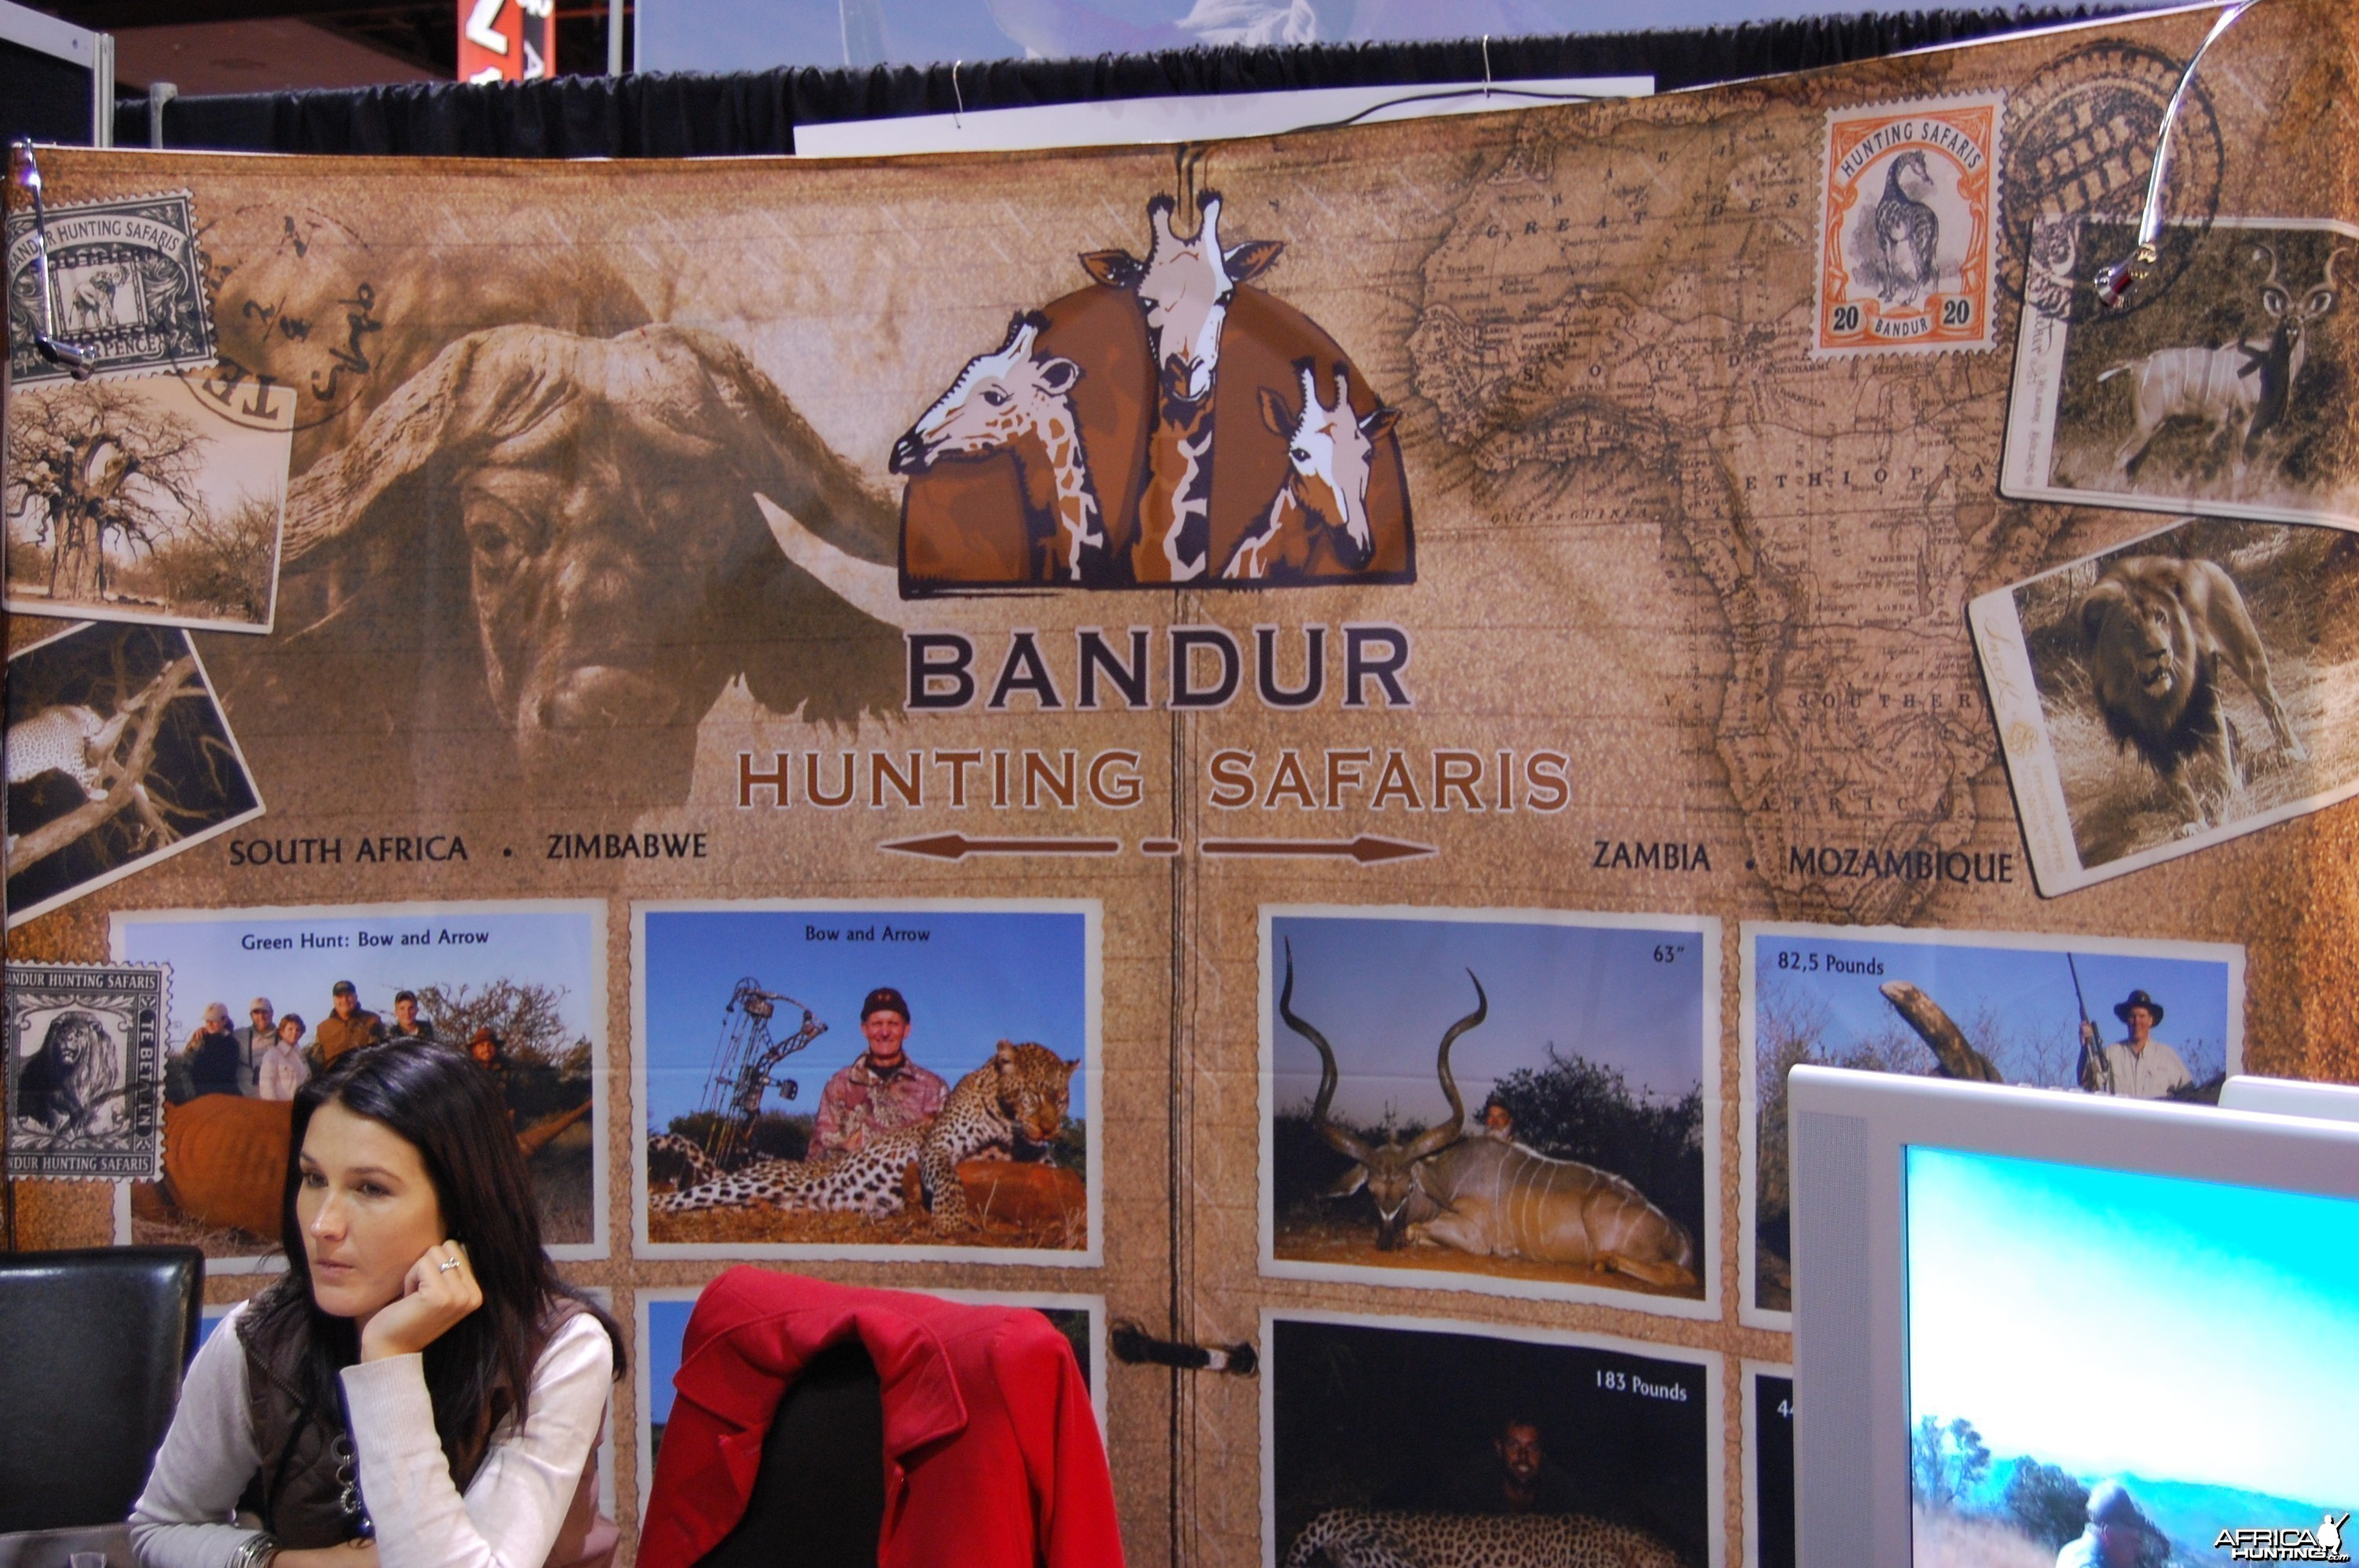 Bandur Hunting Safaris